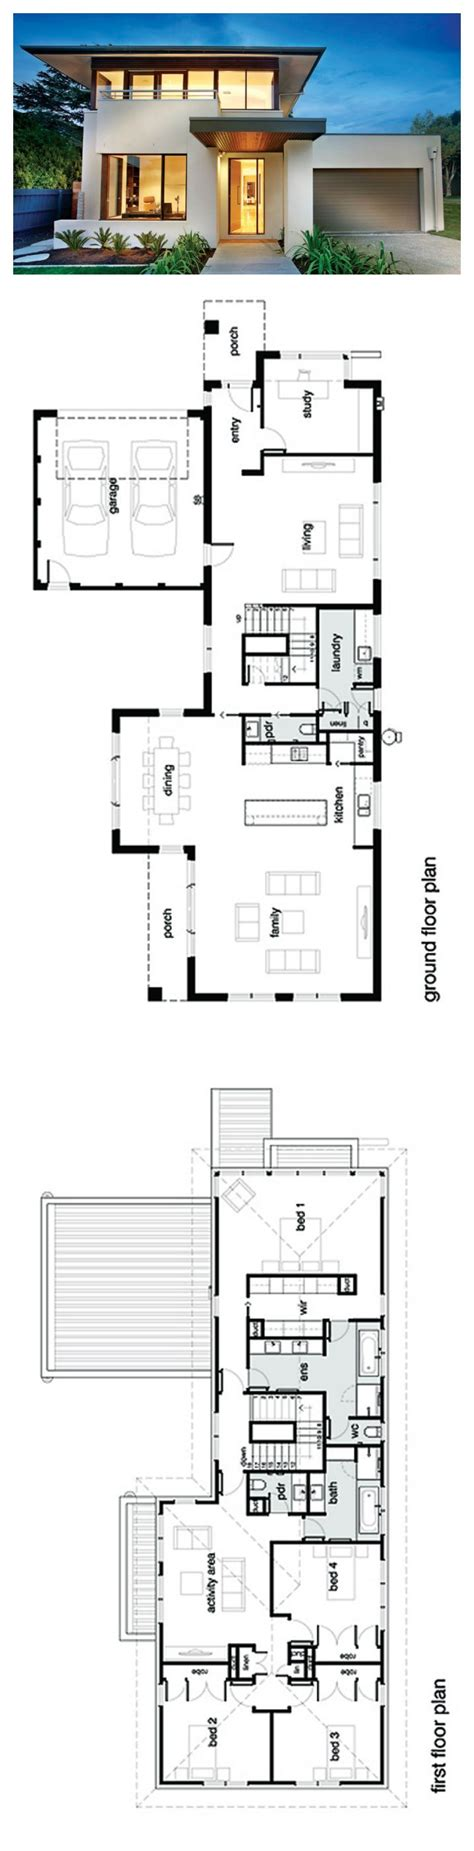 modern mansion floor plans the 25 best ideas about modern house plans on